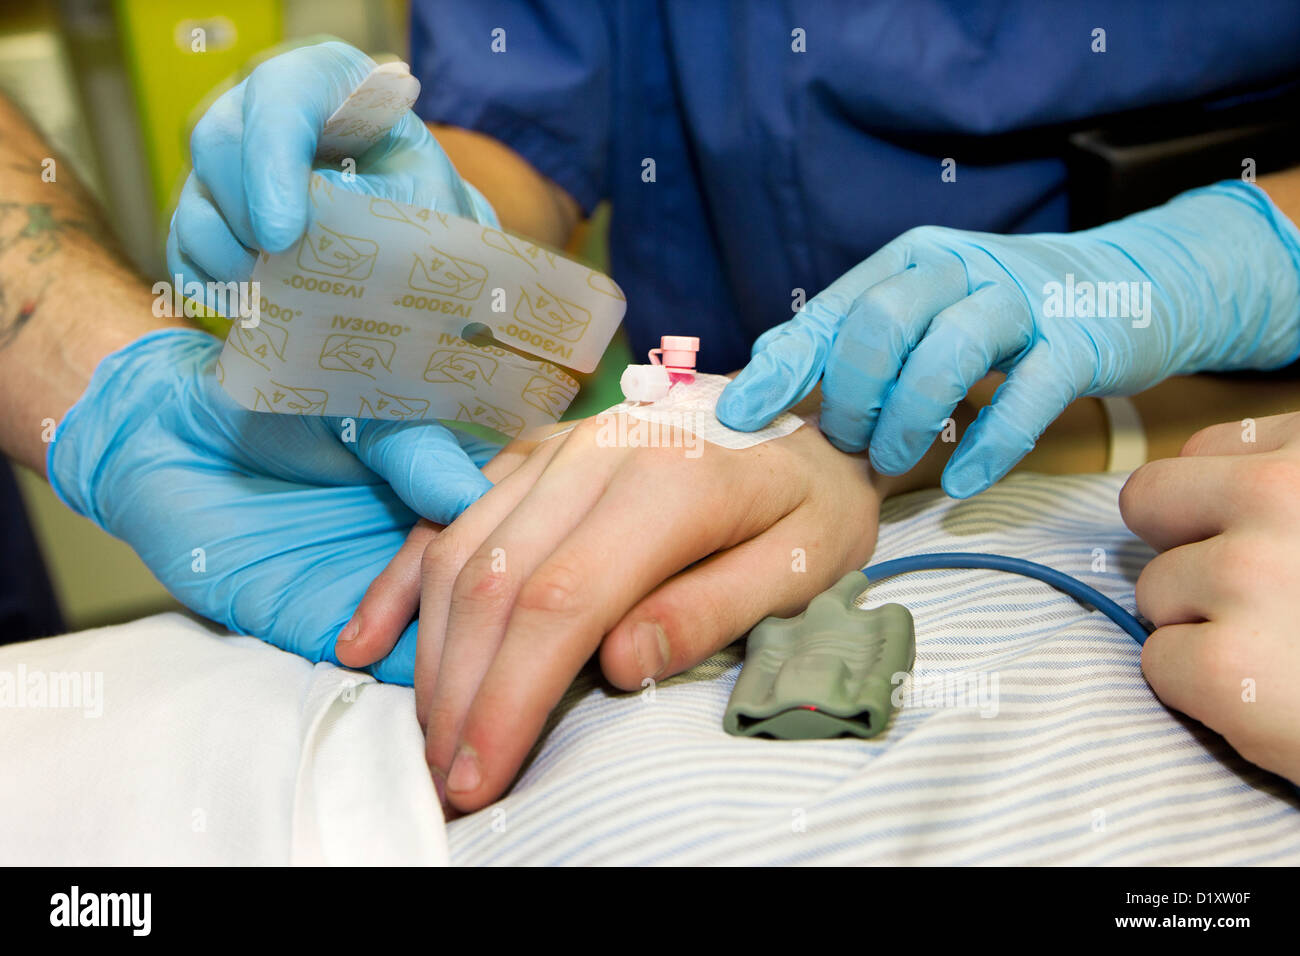 Inserting a Cannula into the back of the hand before surgical operation - Stock Image